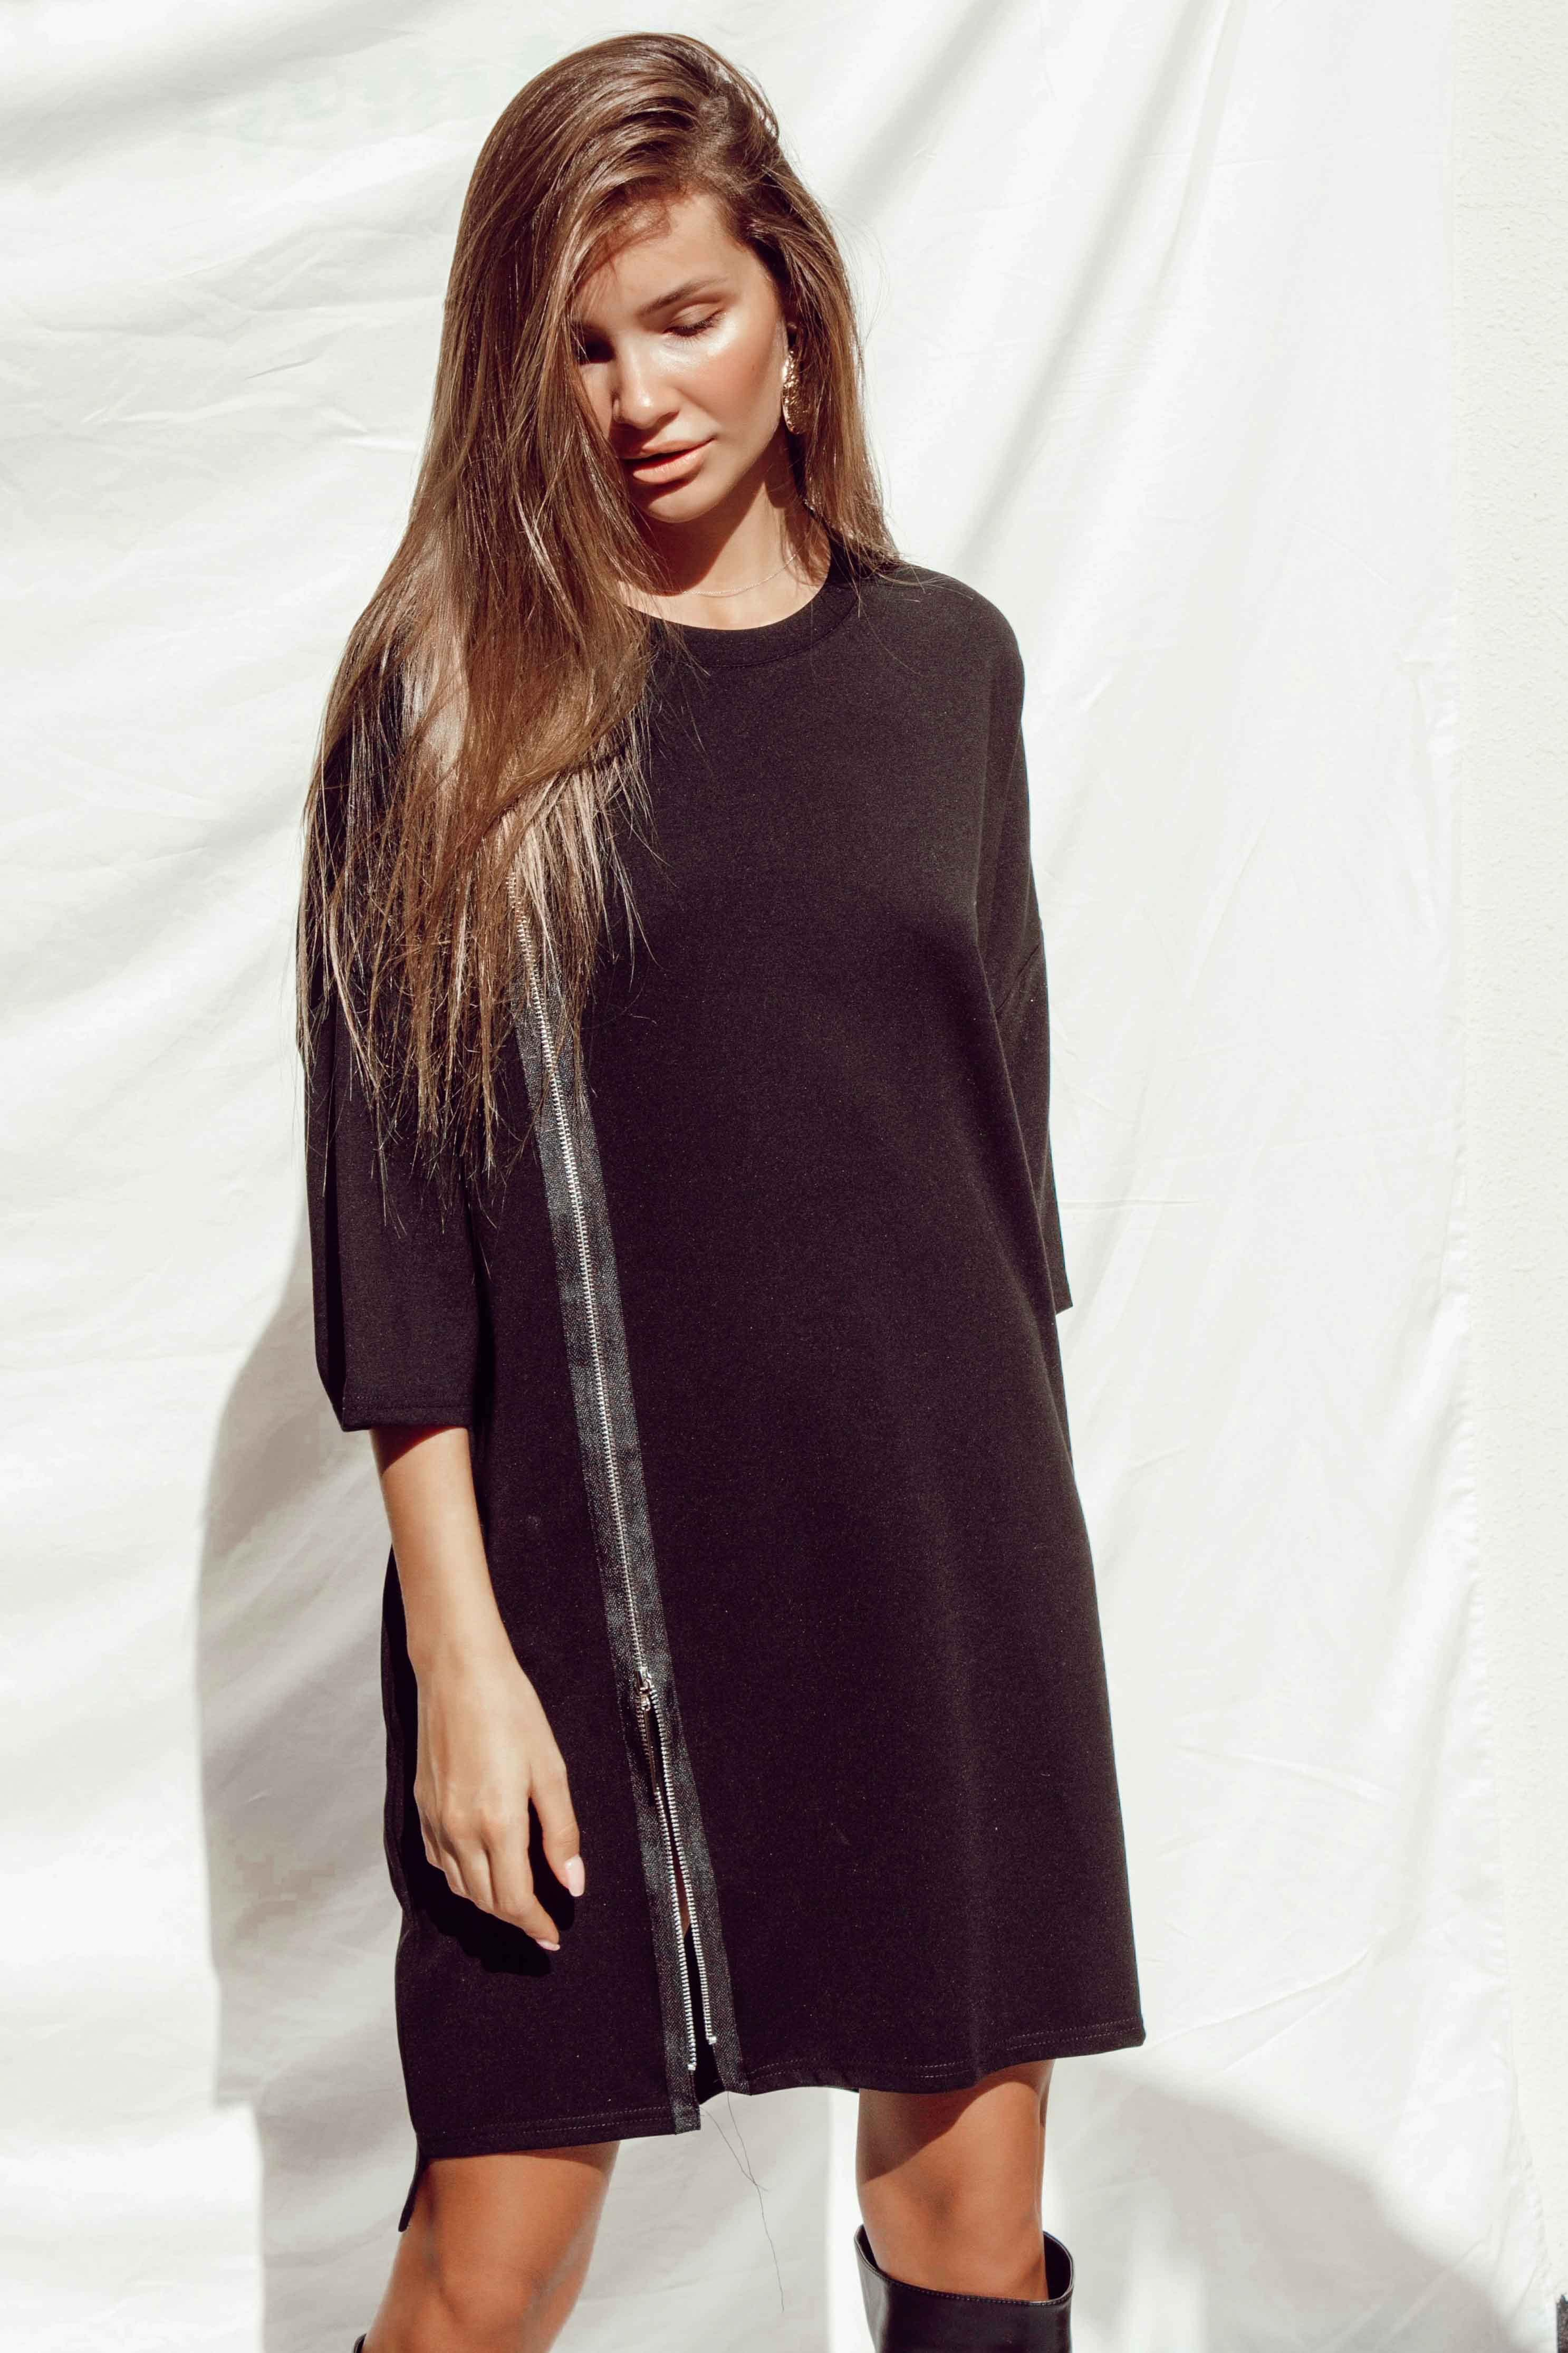 APRYL SHIRT DRESS | Women's Online Shopping | CHICLEFRIQUE  (4438247637081)